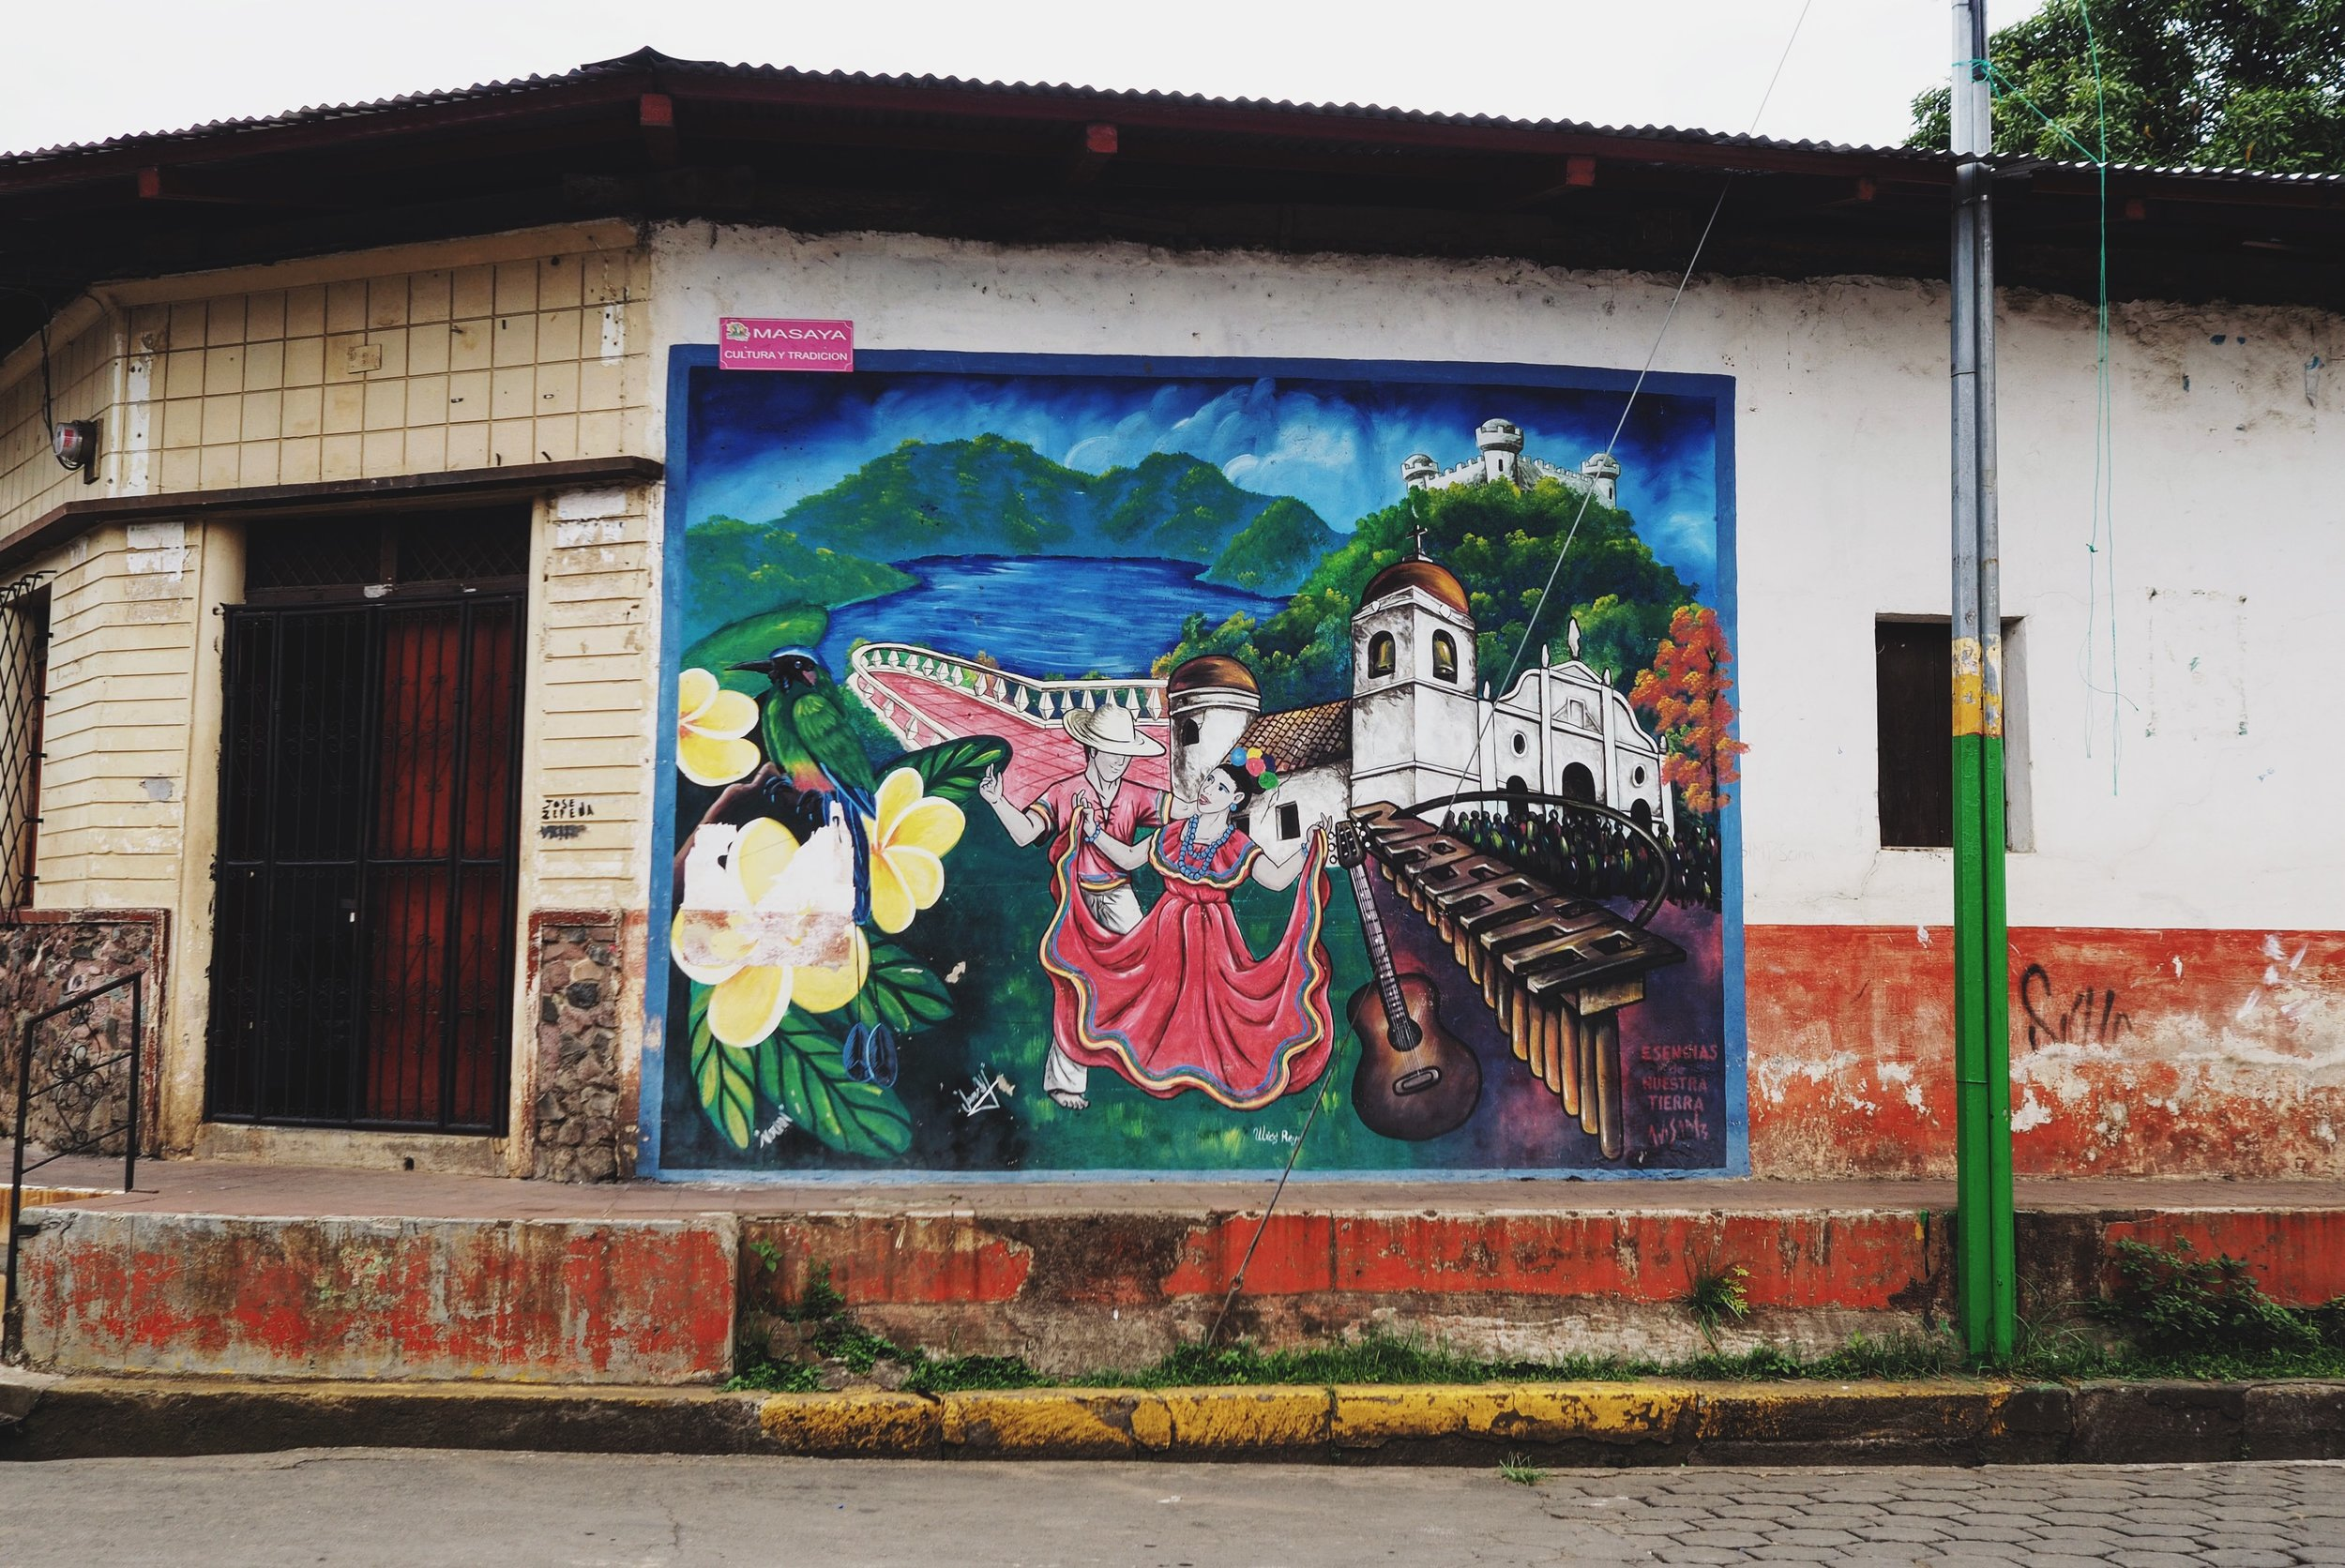 The street art is bright, colorful, and adorns nearly every available wall!